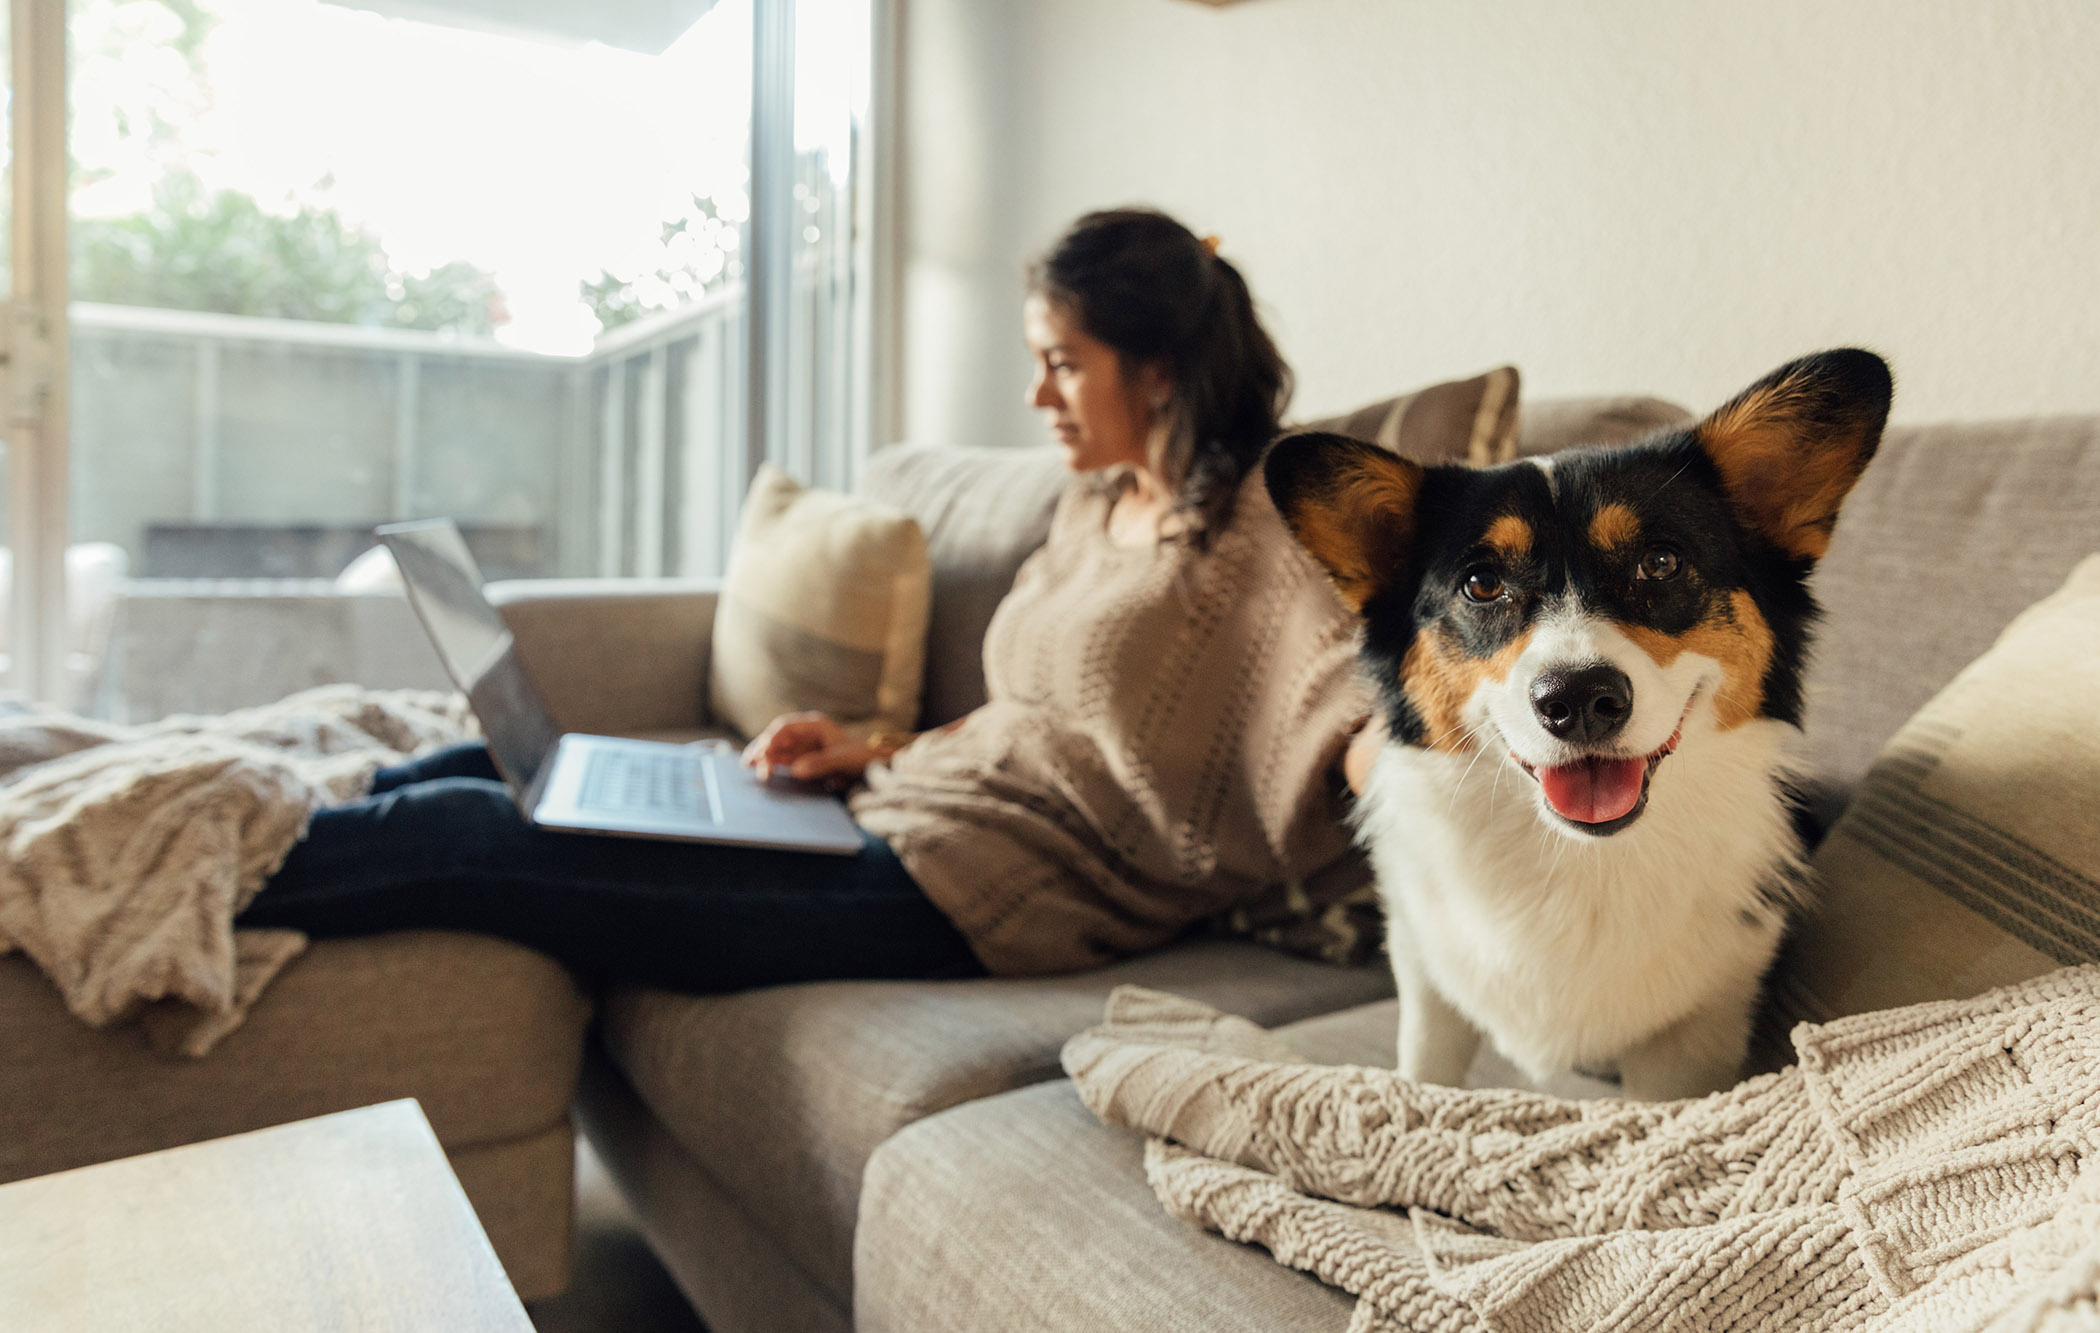 A women sits on her couch working on a laptops and her pet Corgi looks into the care with its tongue out.